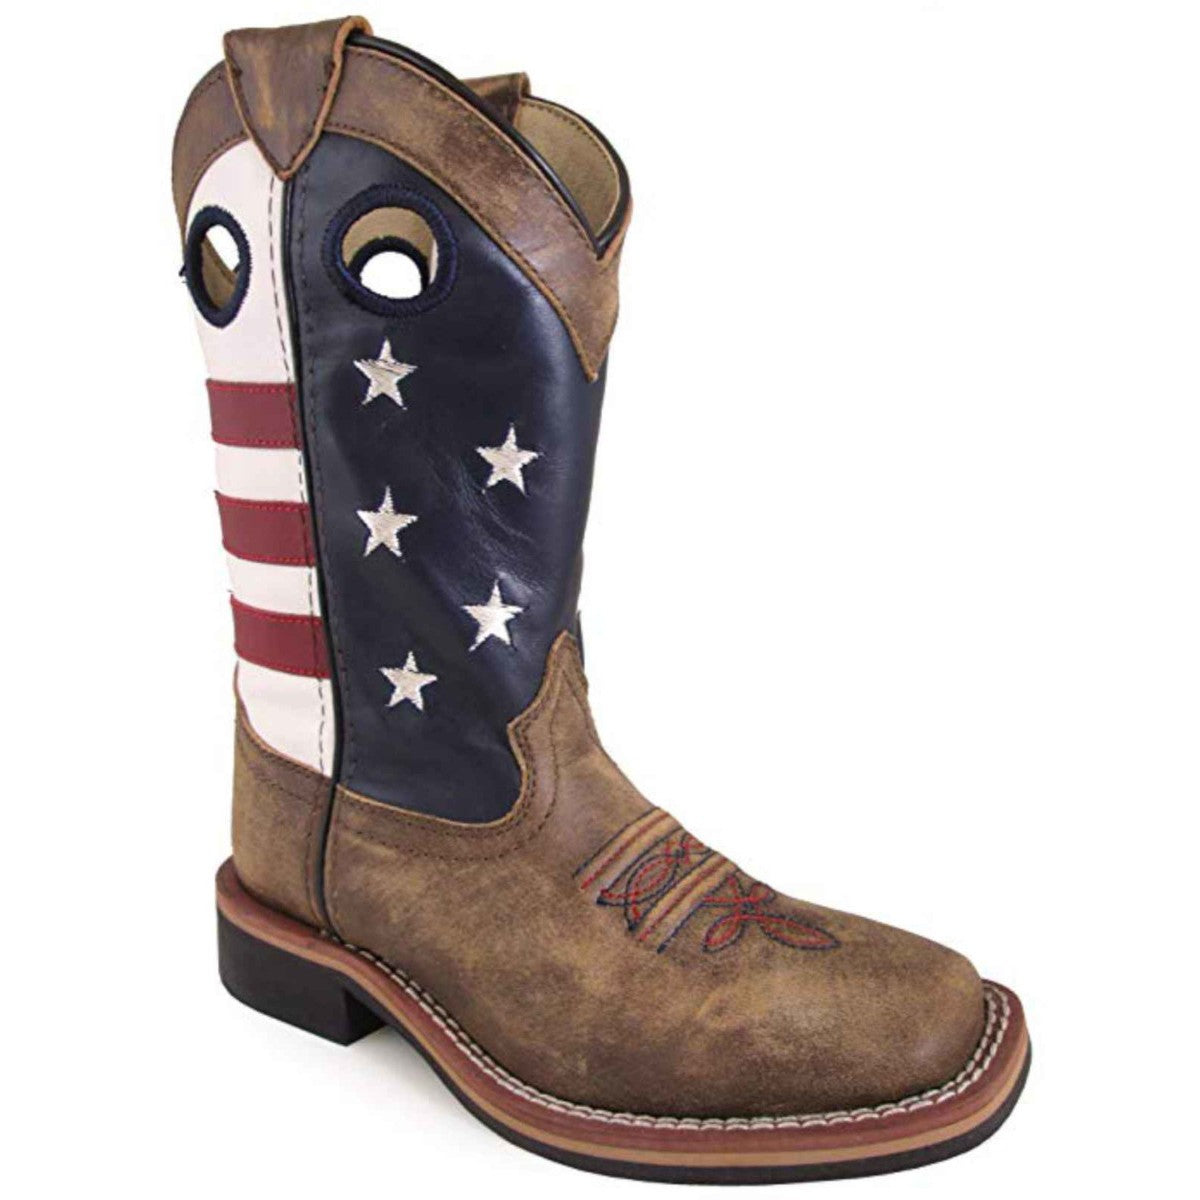 Smoky Mountain Kids' Stars and Stripes Cowboy Boots